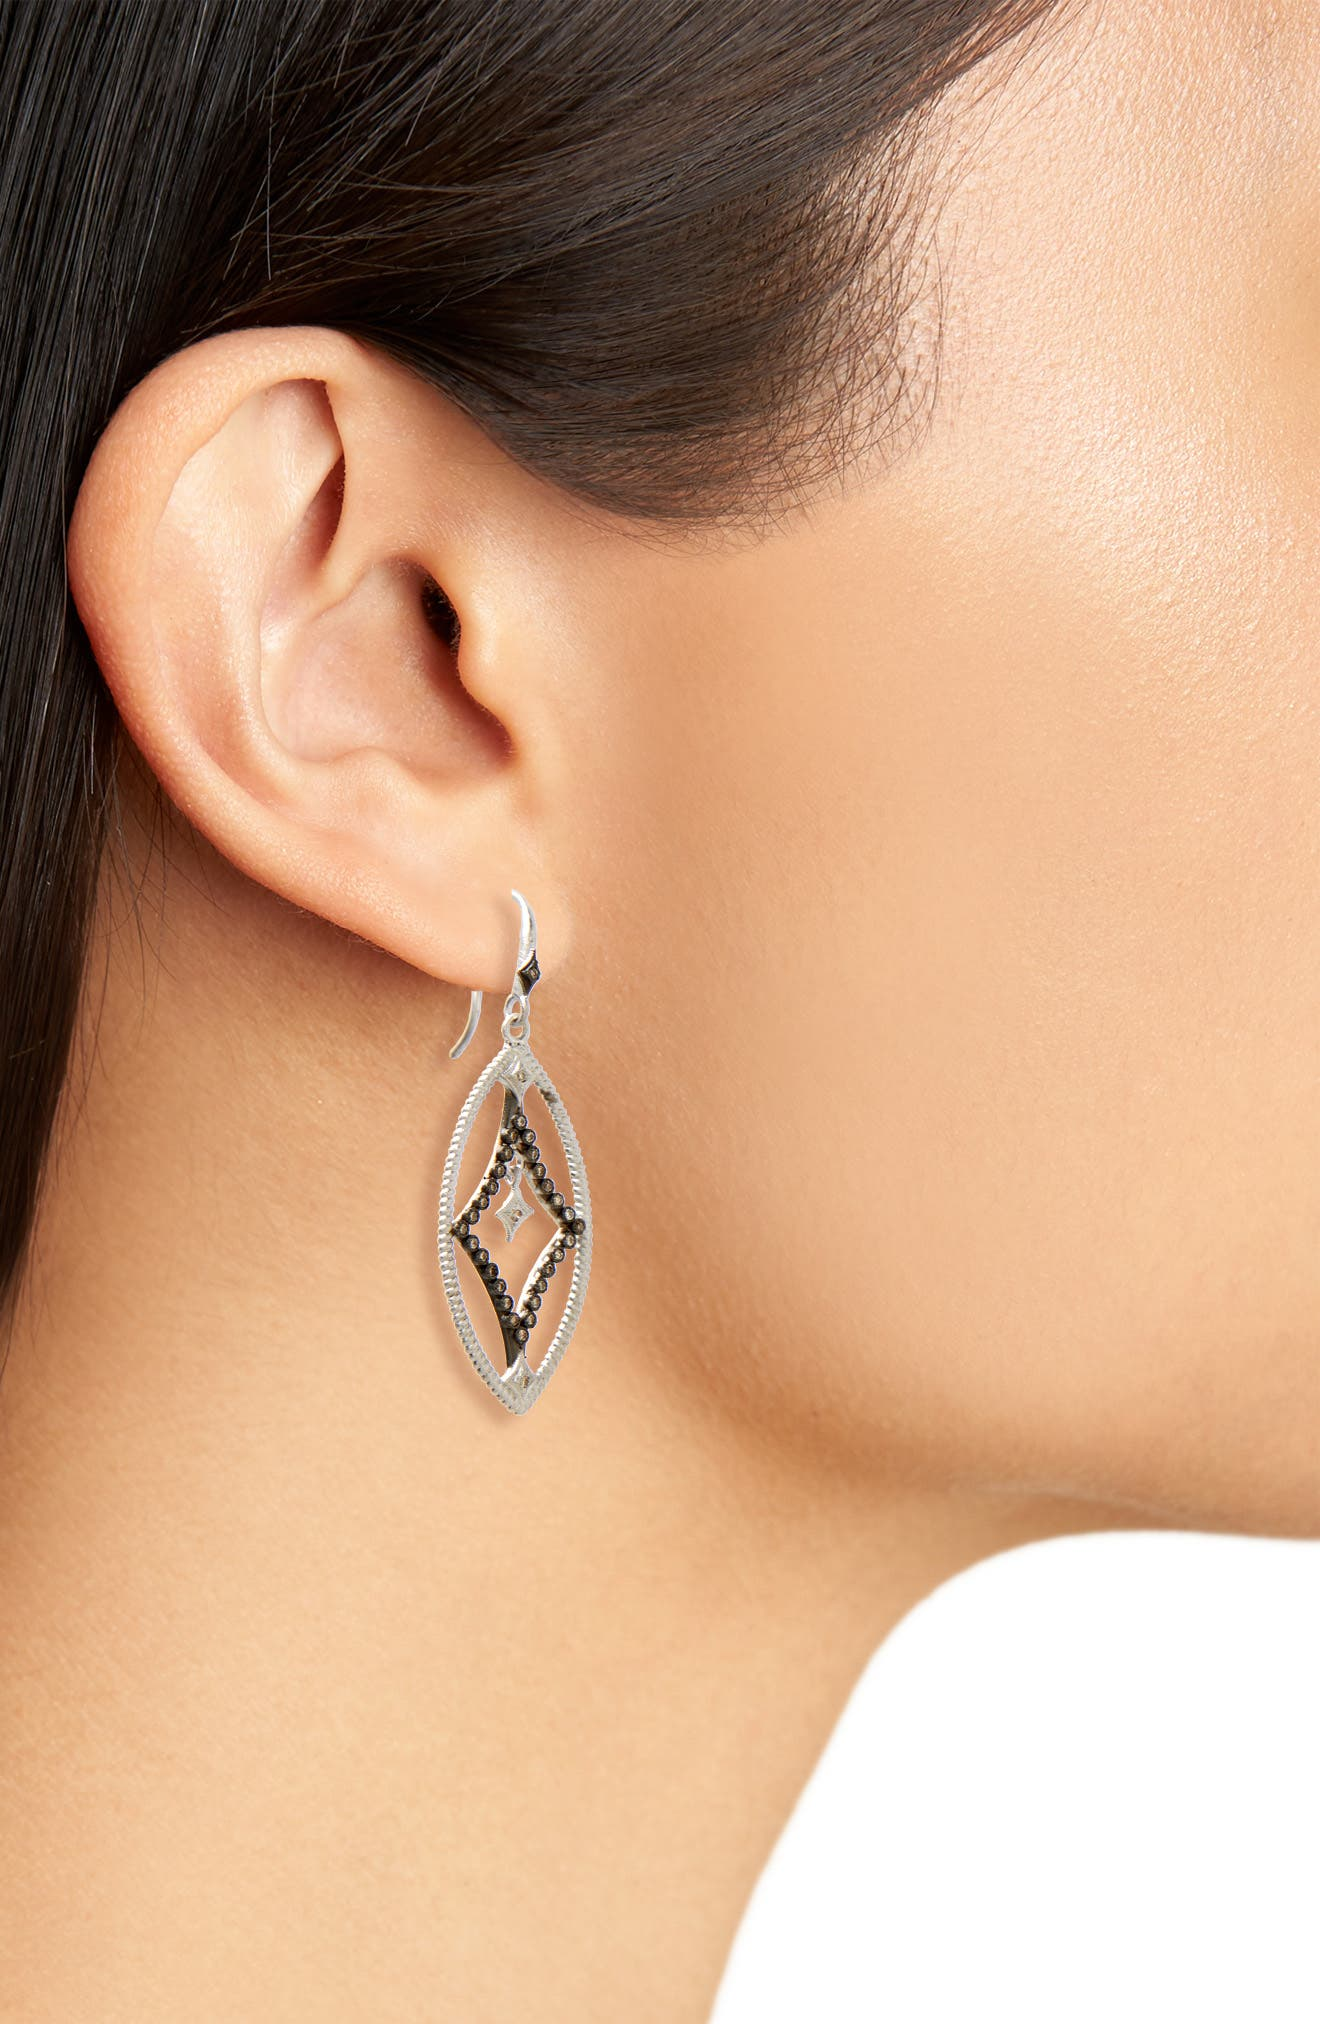 New World Crivelli Drop Earrings,                             Alternate thumbnail 2, color,                             SILVER